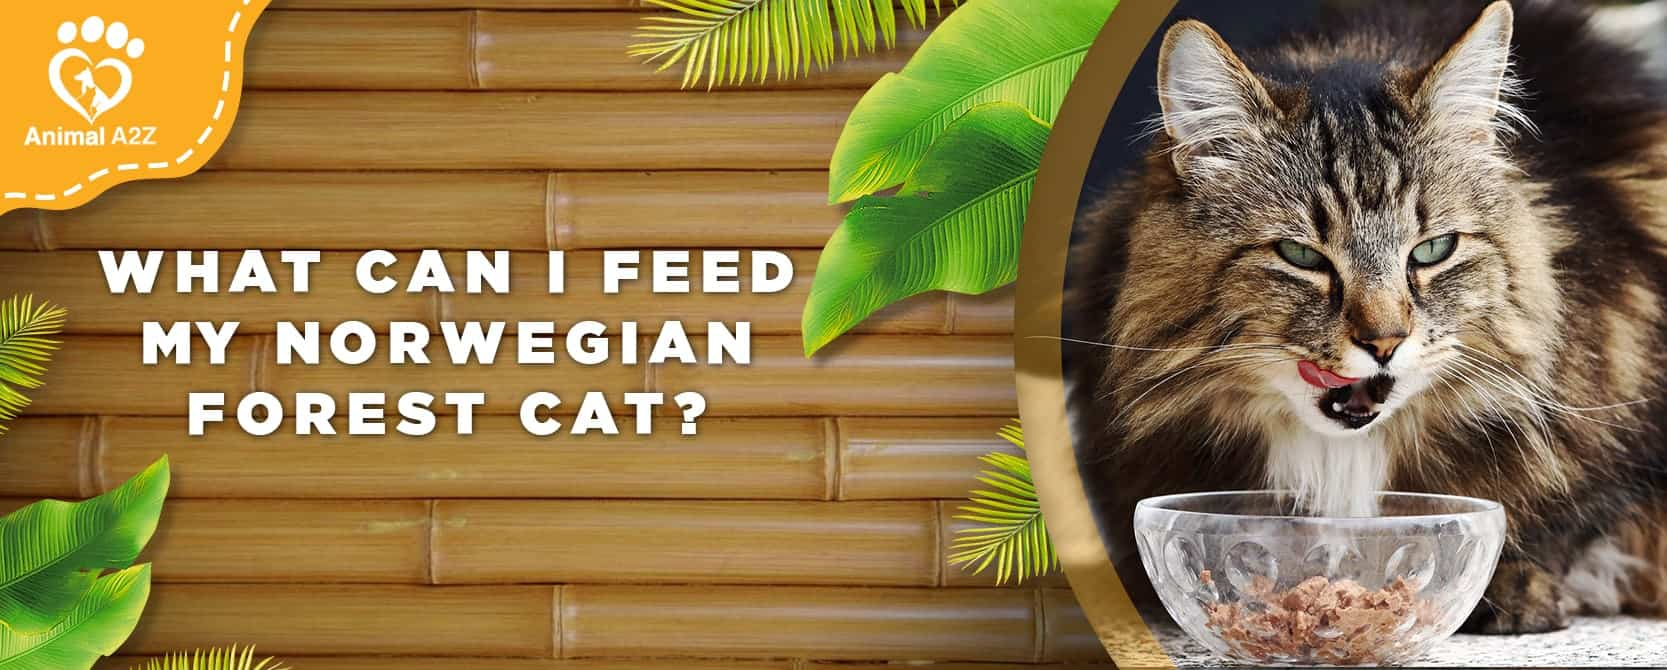 What can I feed my Norwegian Forest cat?